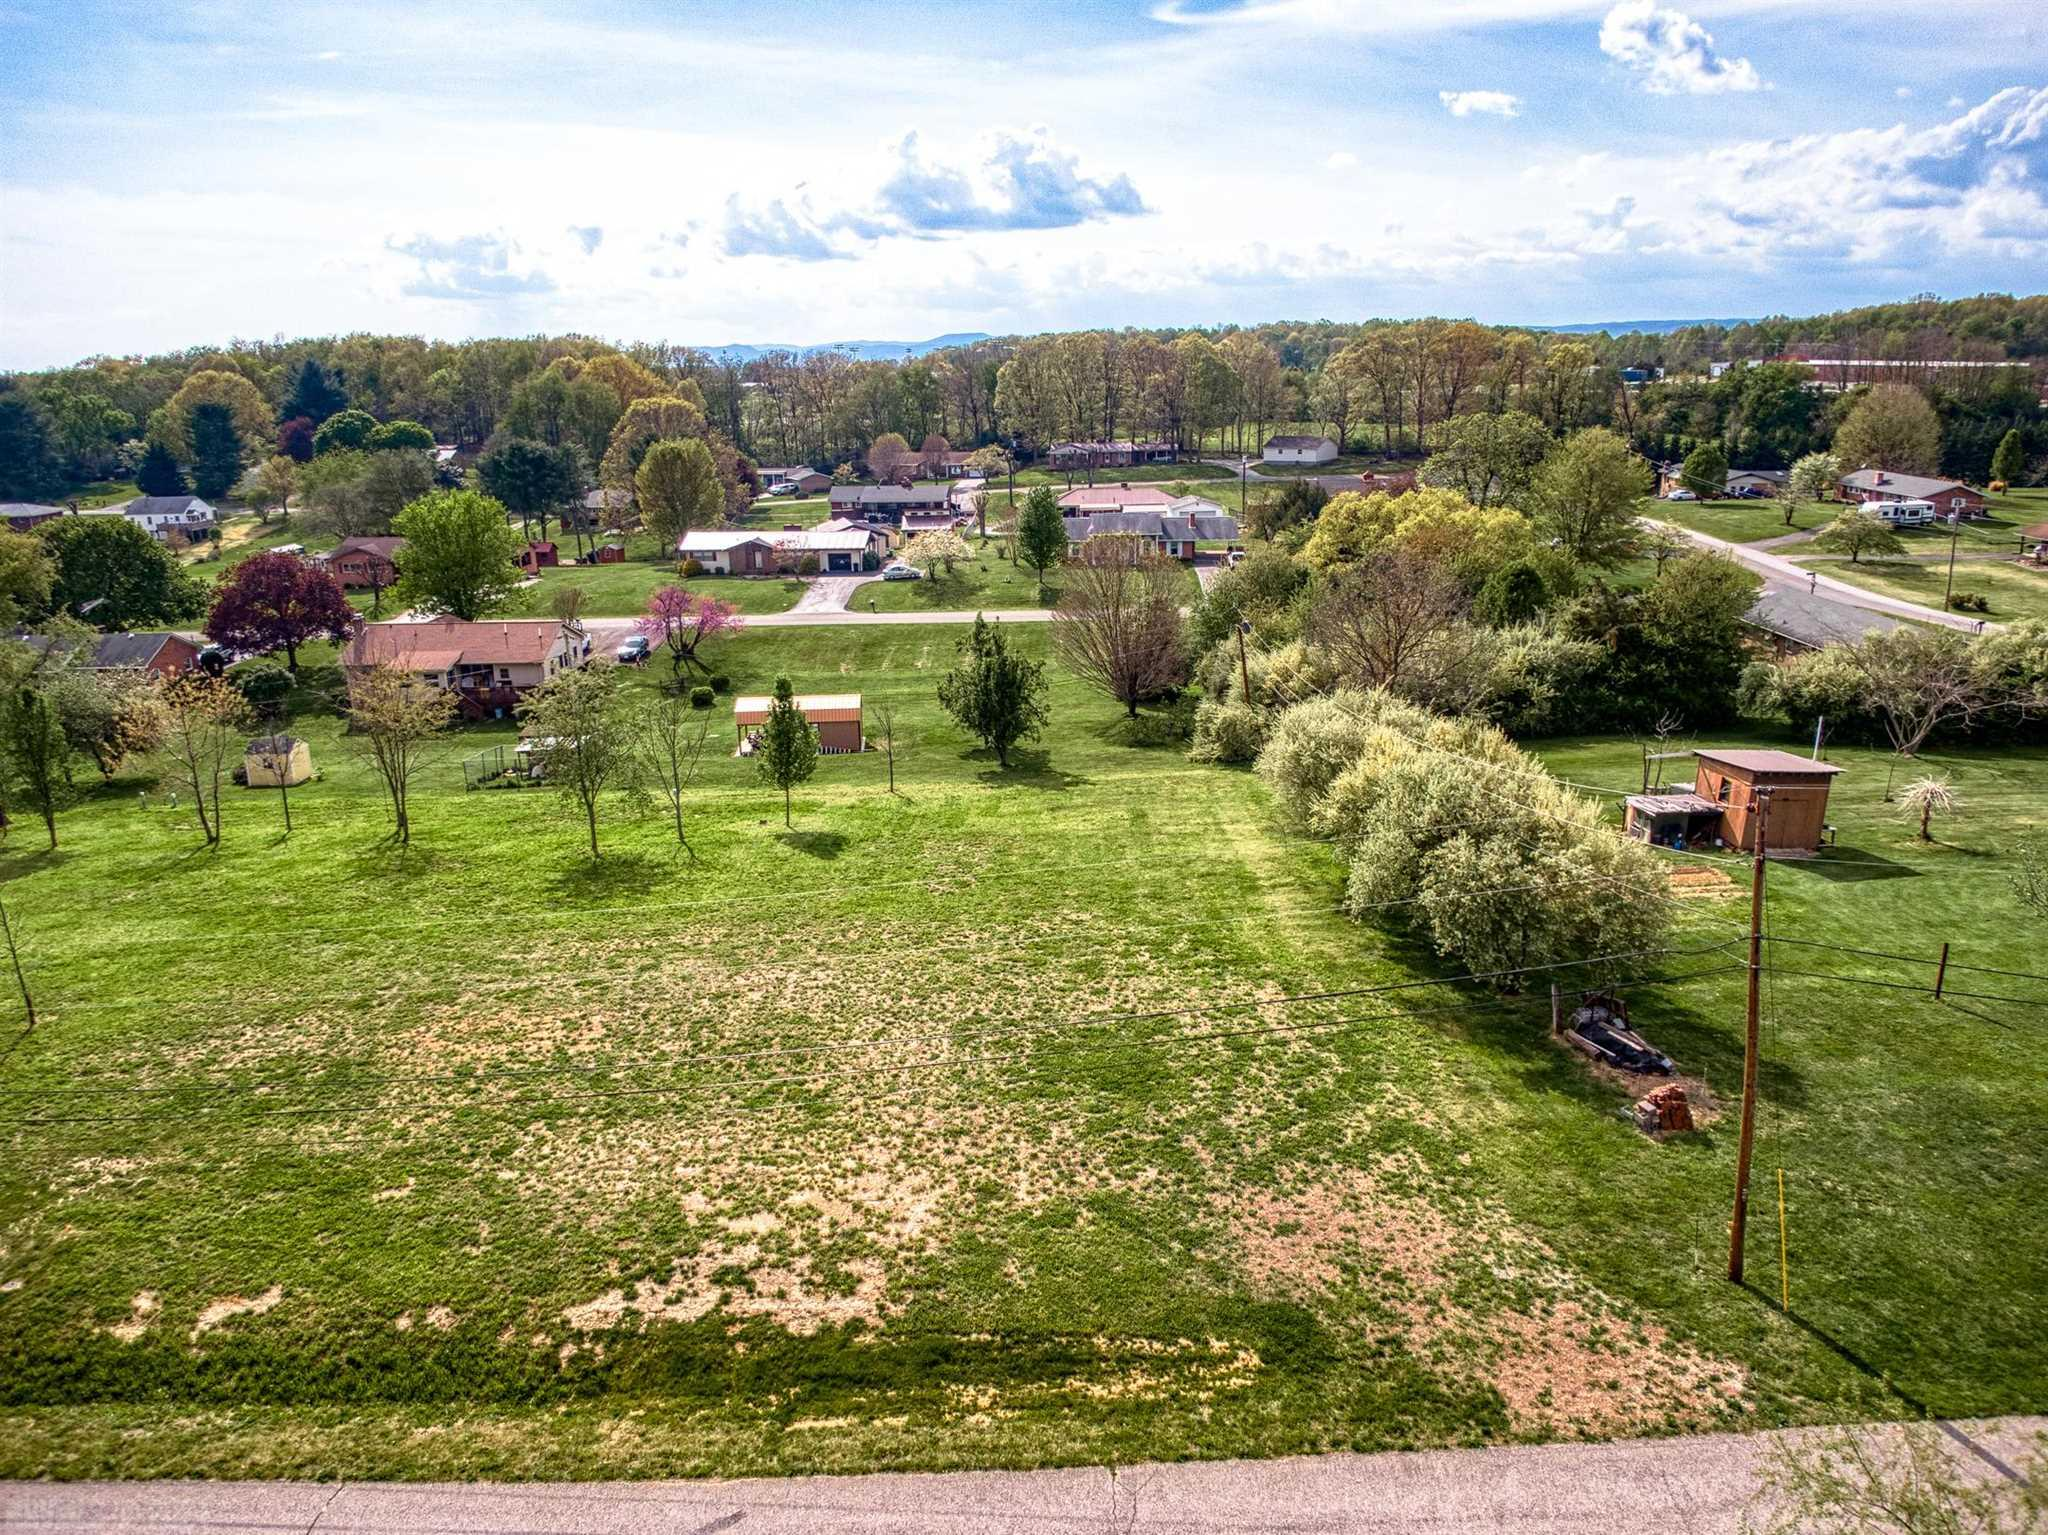 Excellent building location.  Cleared, level lot in convenient location to Interstate 81 and Route 100.  Shopping, restaurants and schools are just a few of the amenities easily accessed.  Public water and sewer are available at street. Call Listing Agent with questions